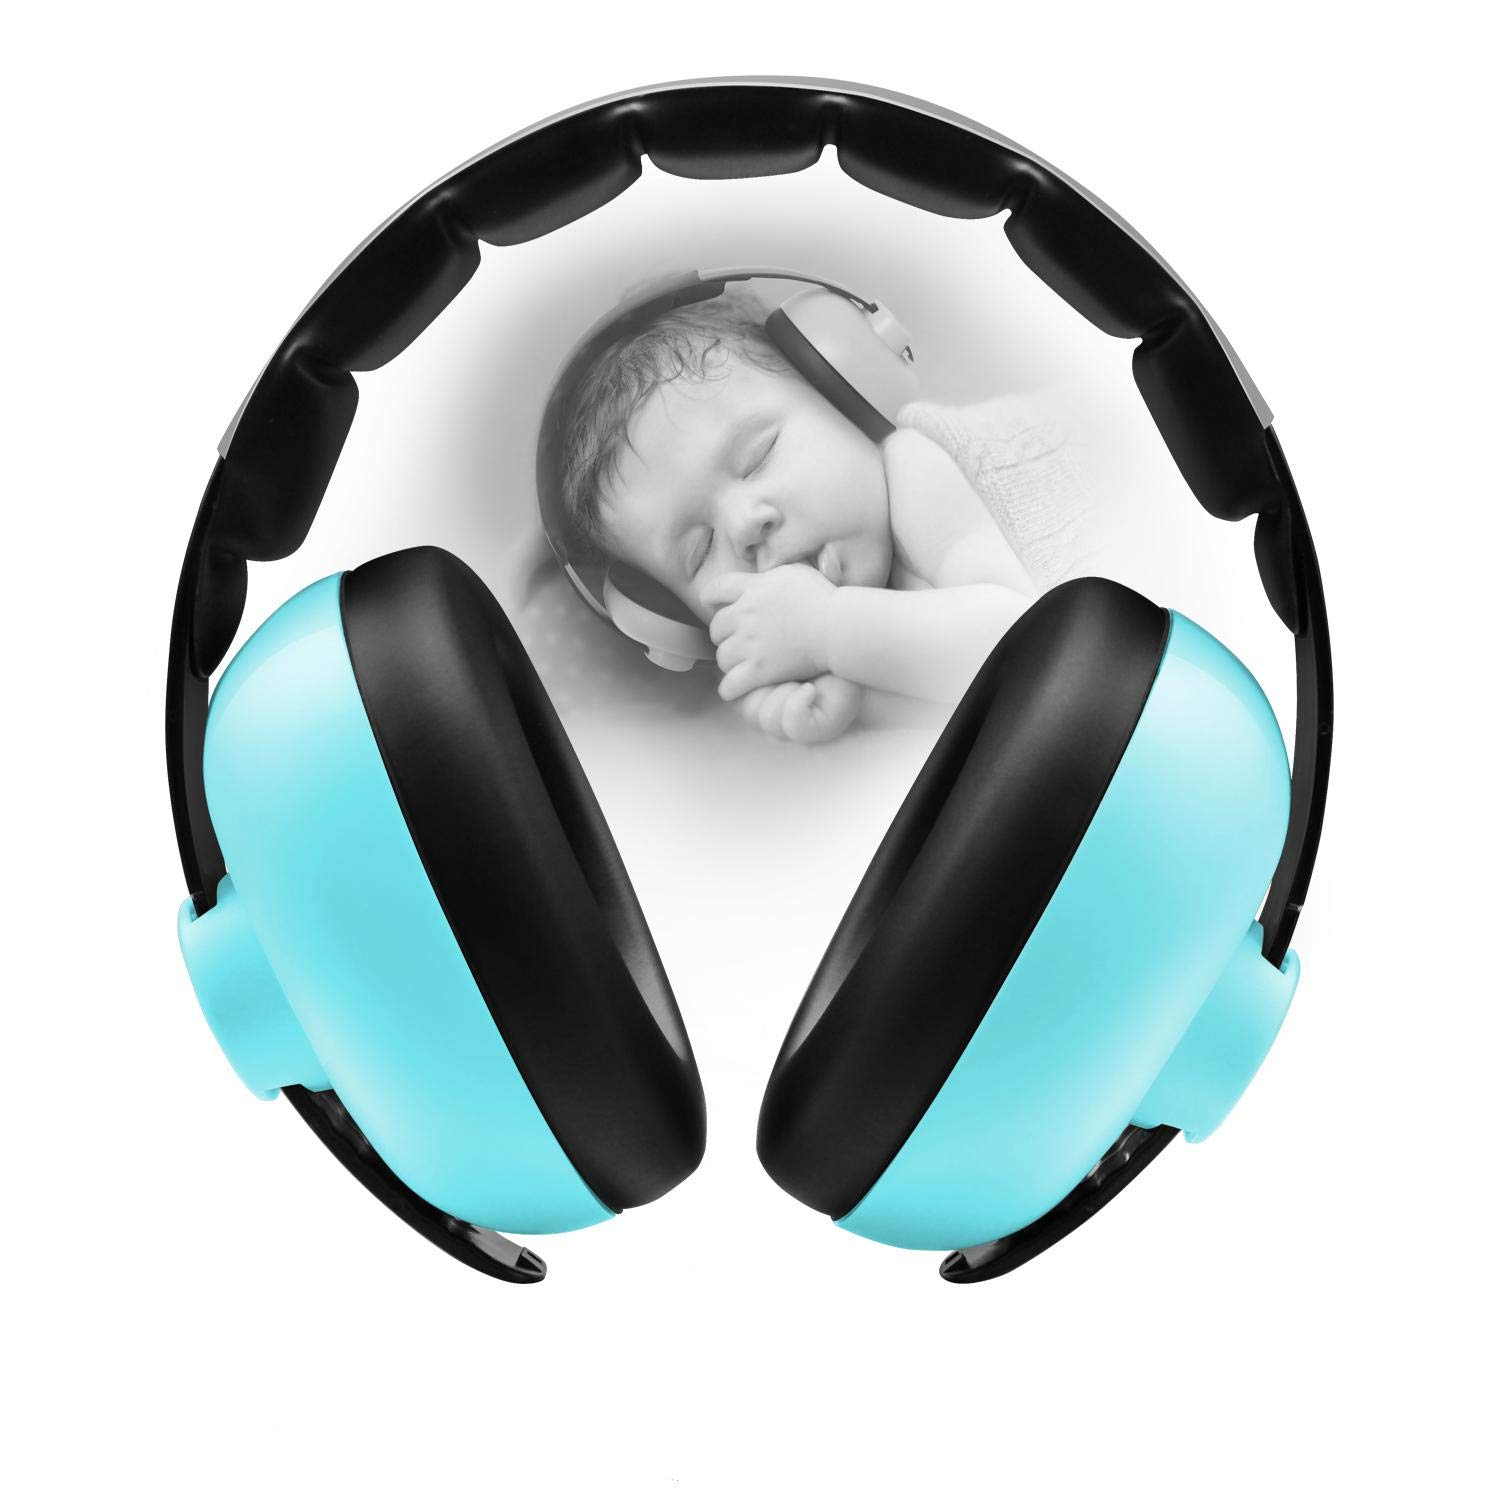 BBTKCARE Earmuffs Infant Hearing Protection Baby Headphones Noise Cancelling Headphones for Babies